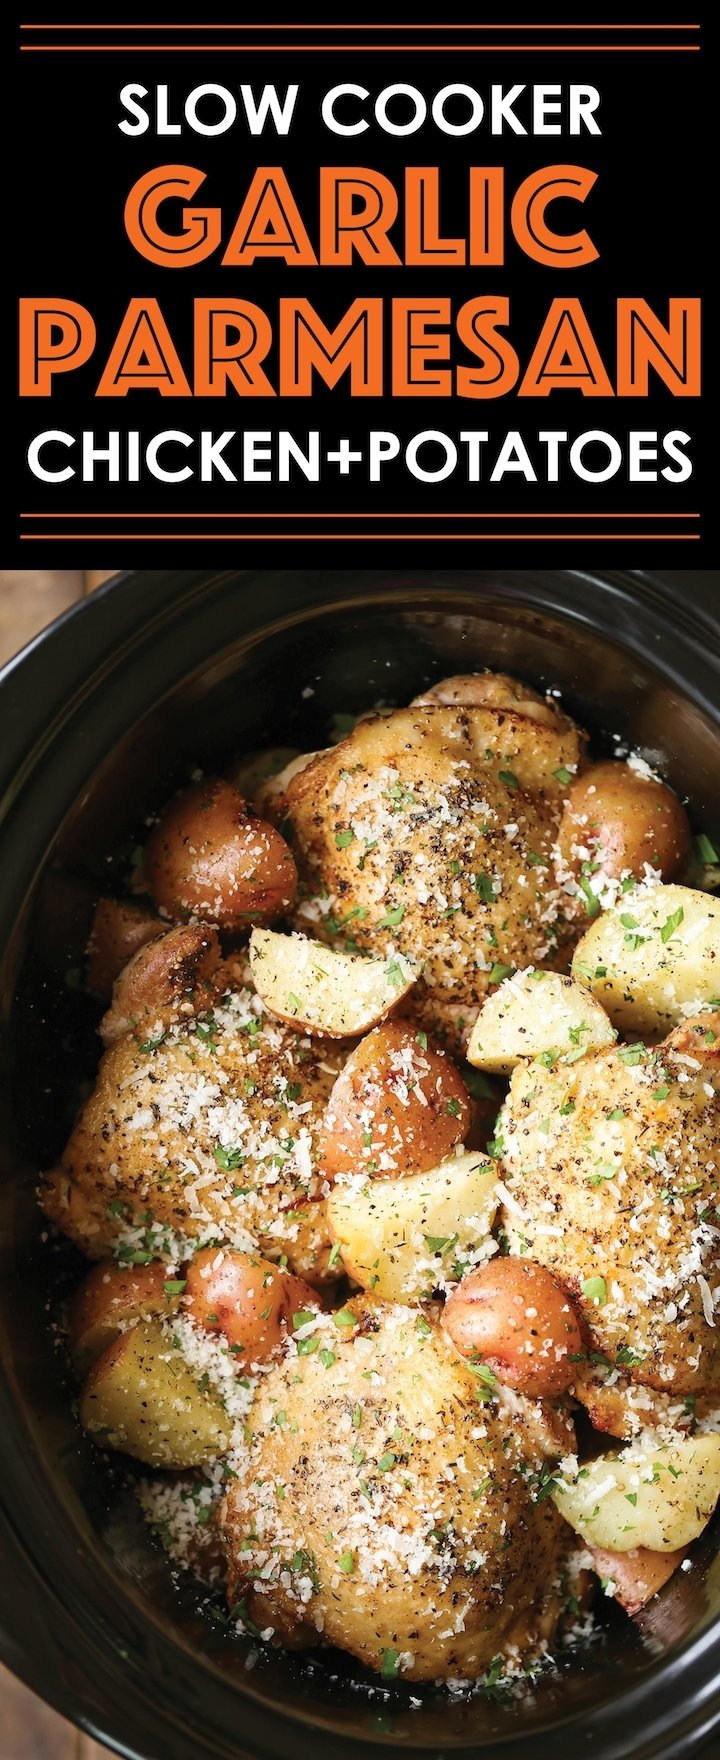 10 Fantastic Crock Pot Ideas For Chicken slow cooker garlic parmesan chicken and potatoes damn delicious 2020